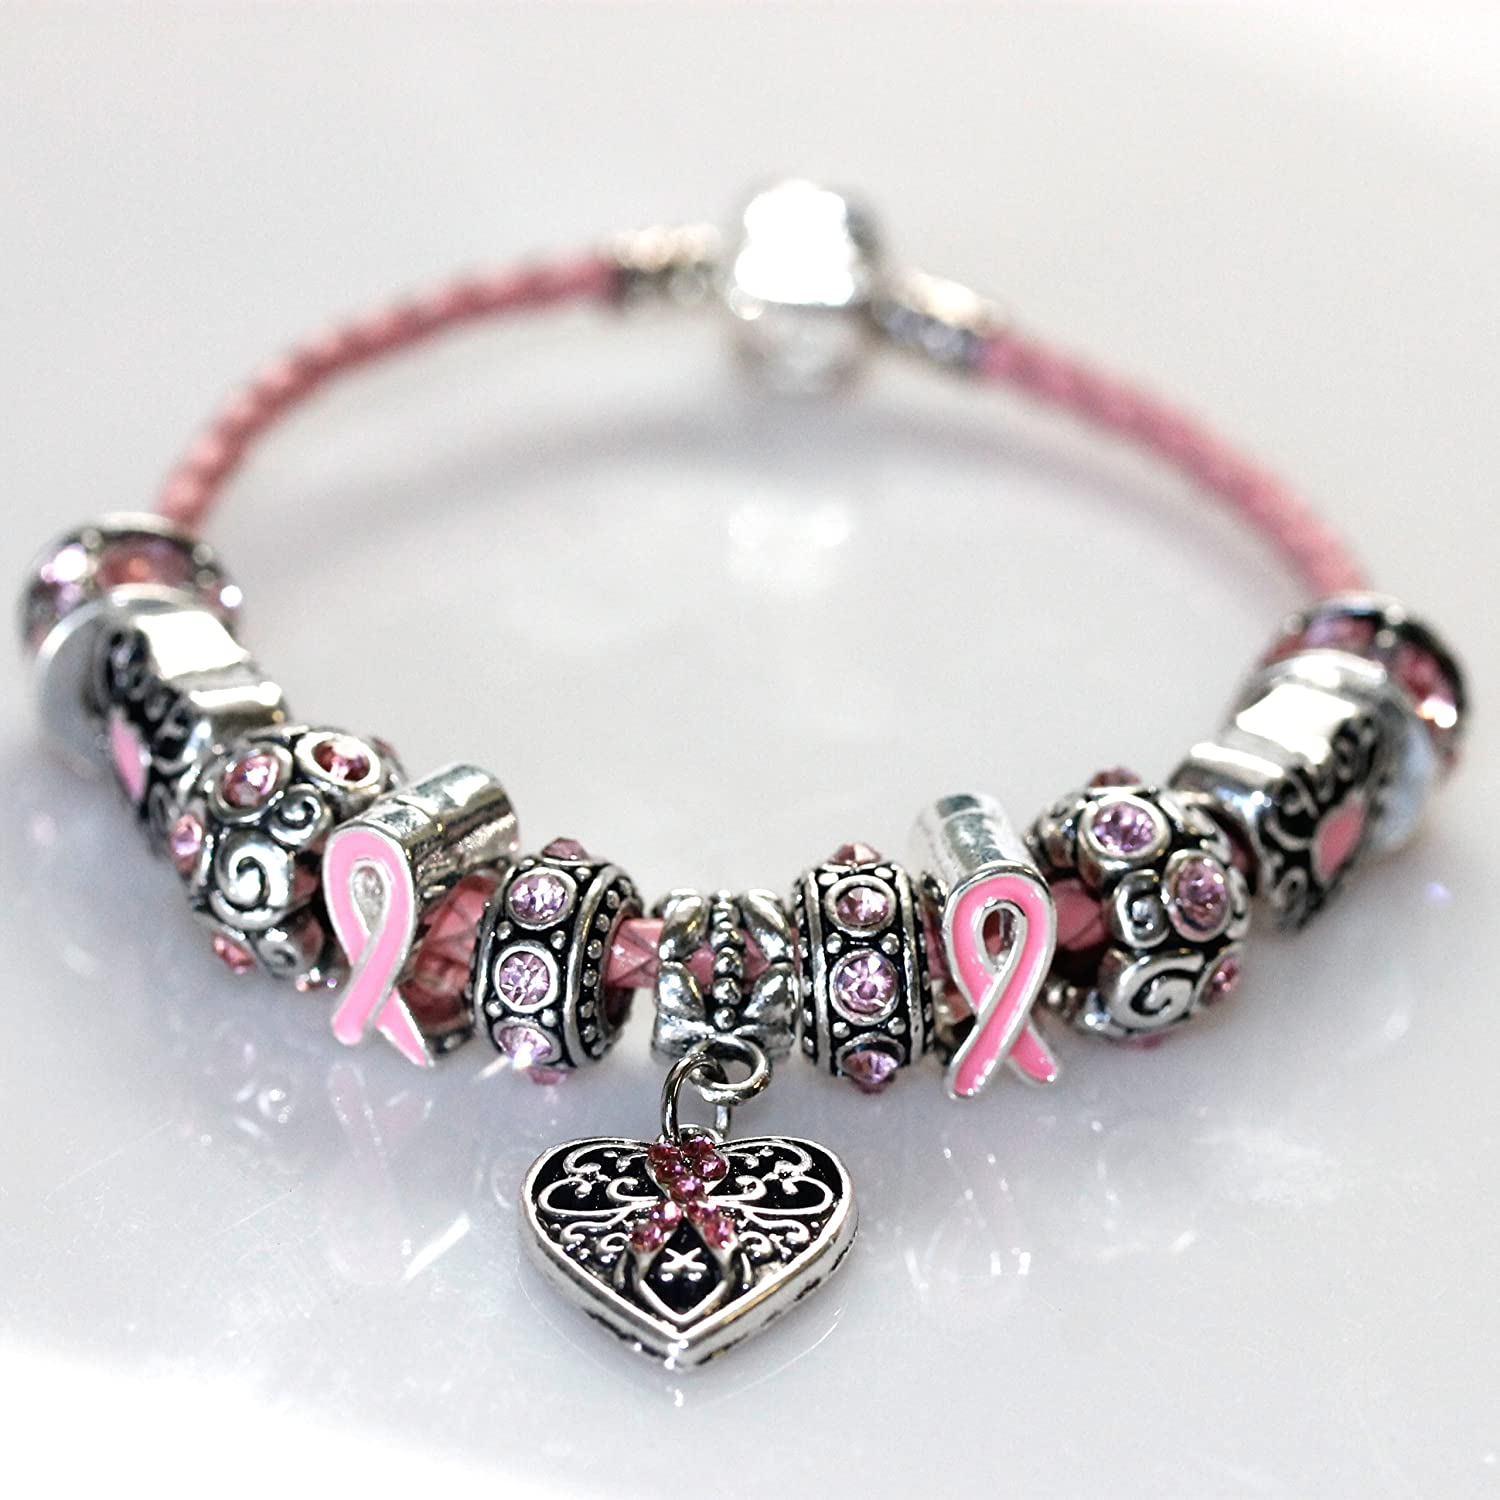 bands survivor supports cancer bracelet patients breast yoga hale